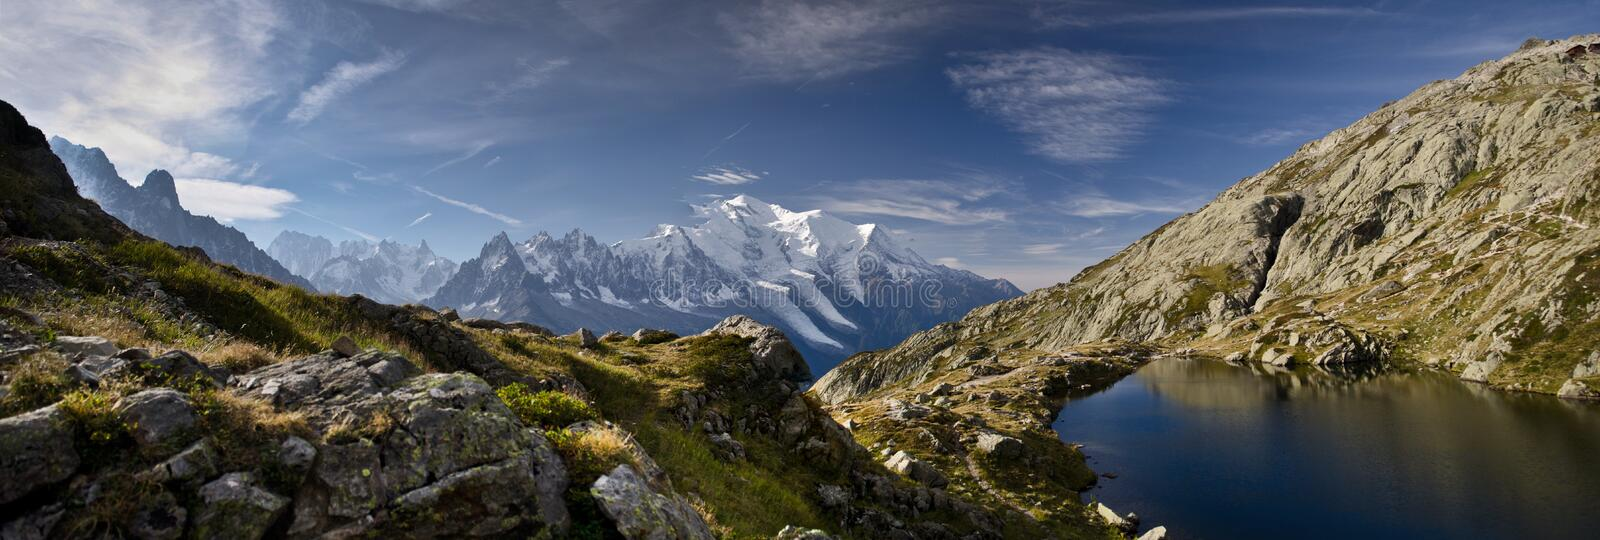 Lake in the French Alps royalty free stock photos